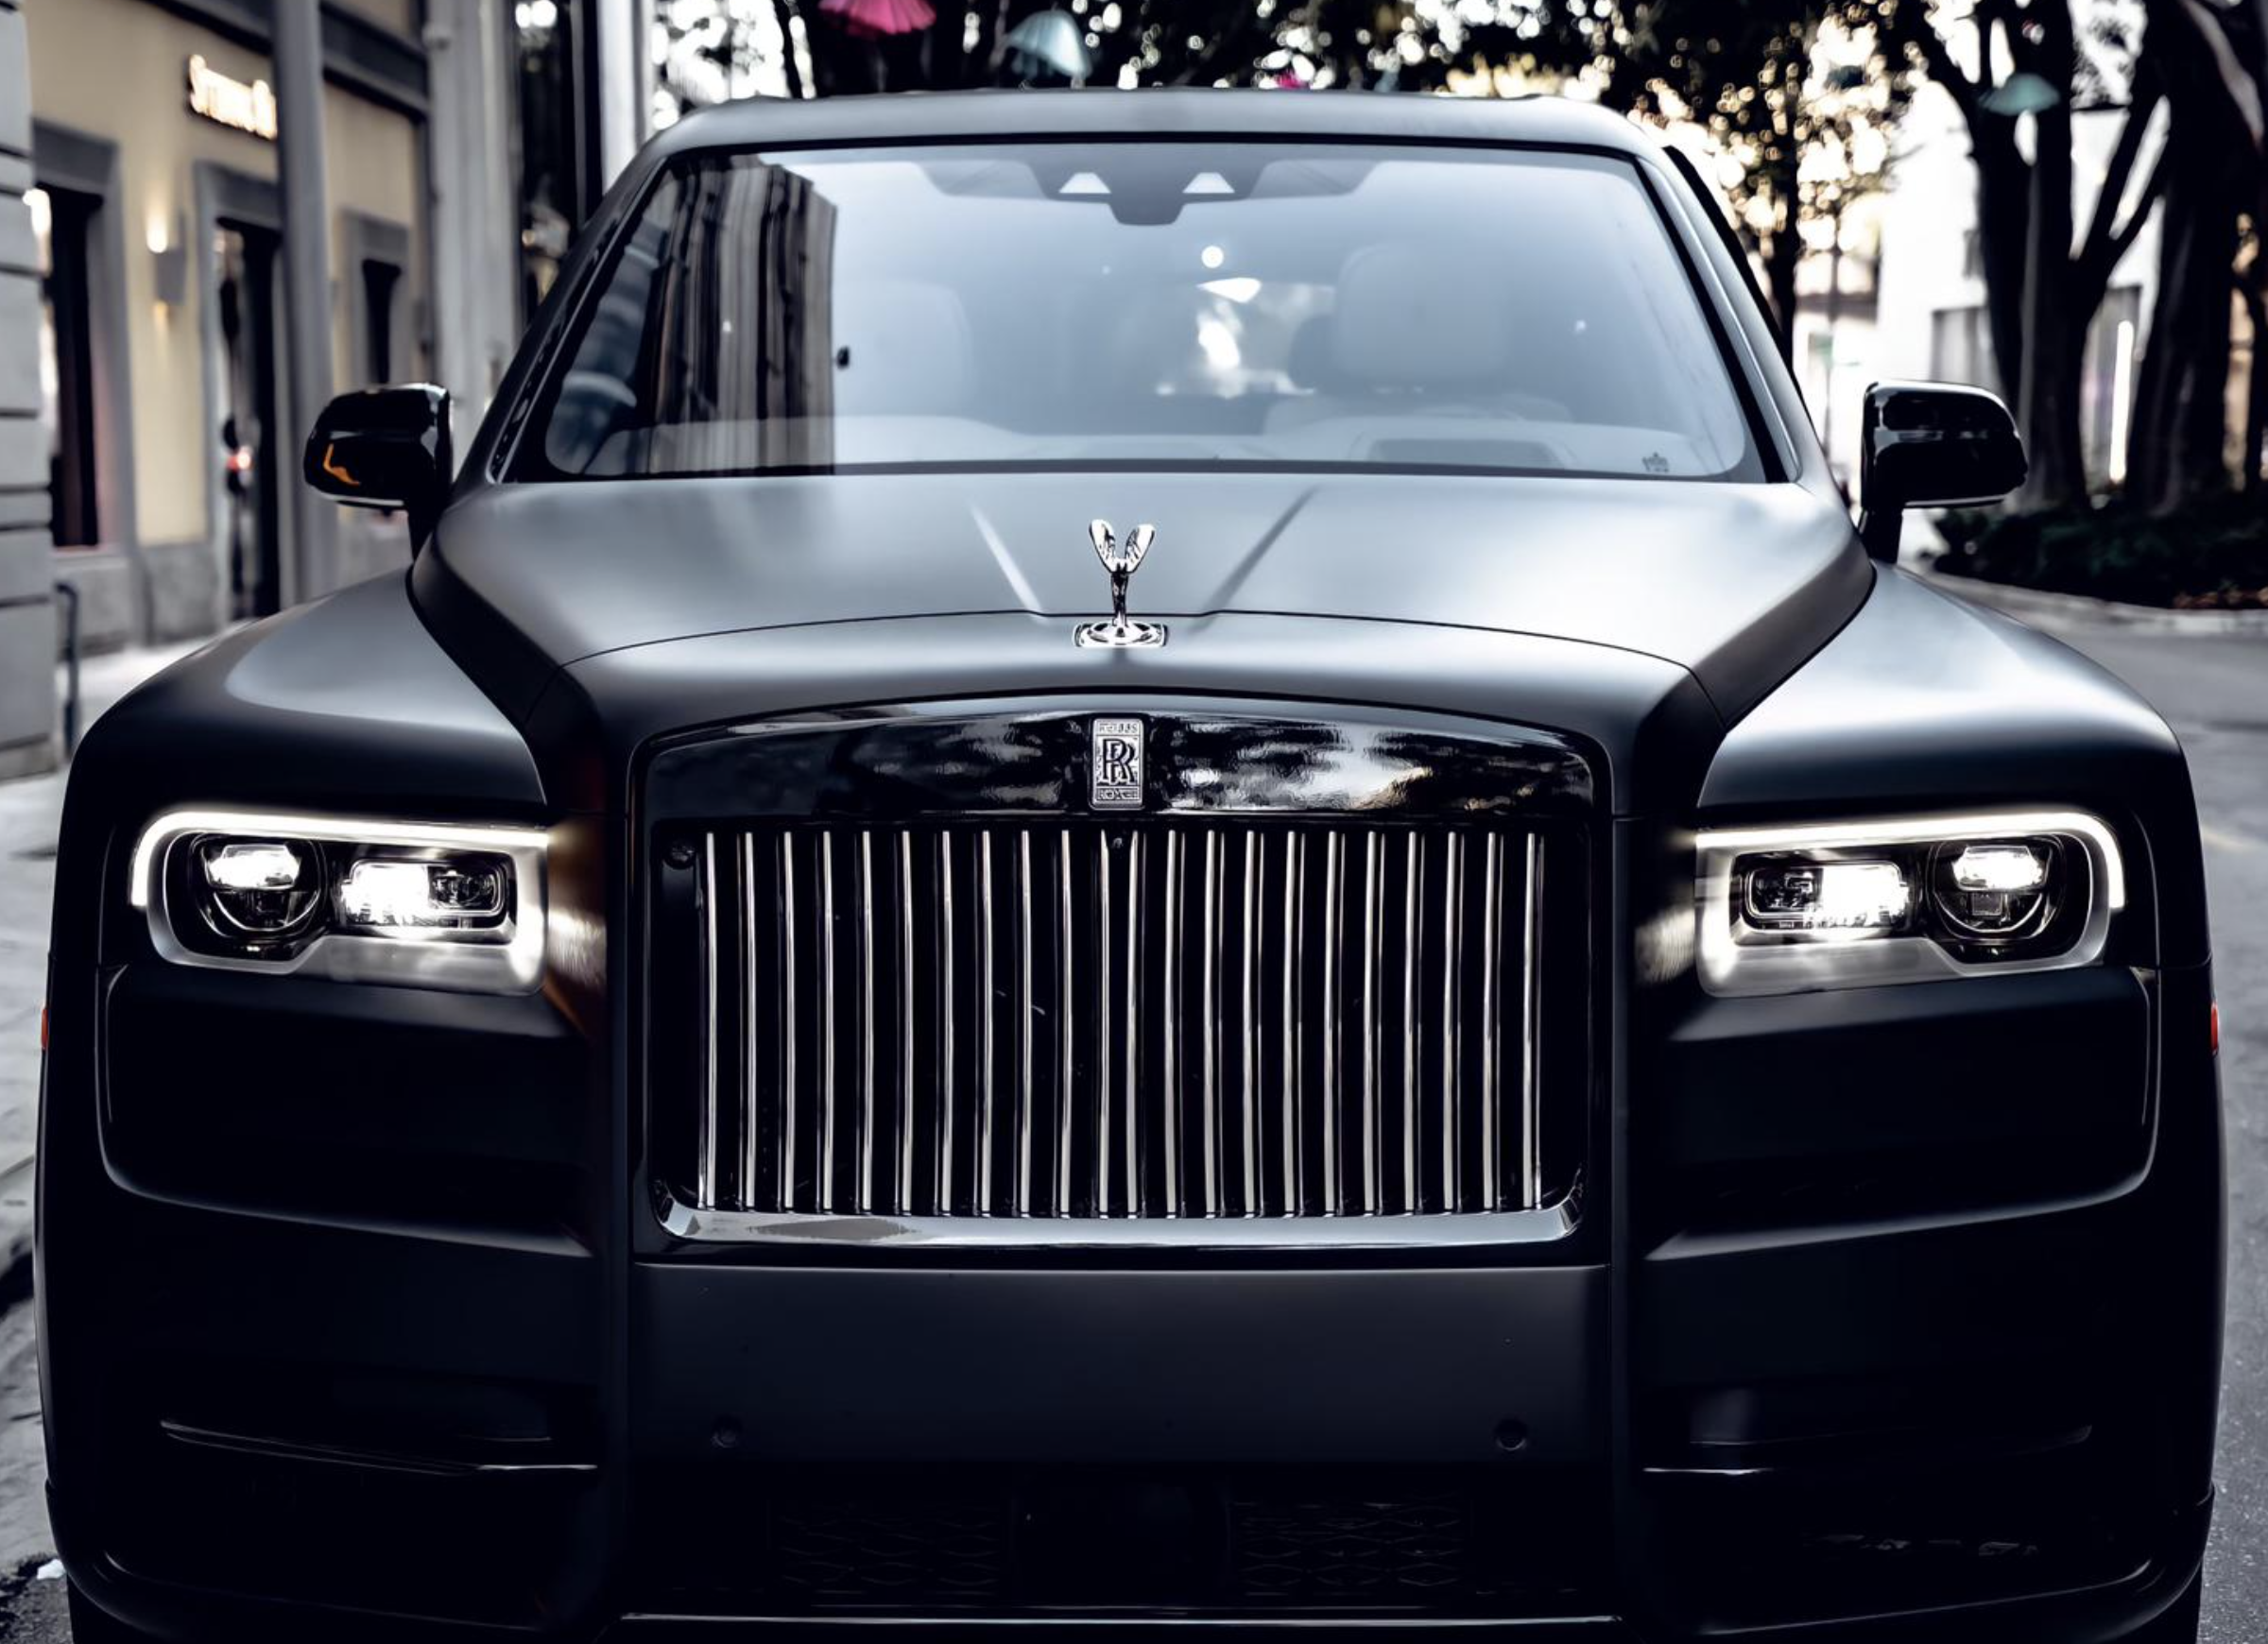 Image #10 of our  2021 ROLLS ROYCE CULLINAN - MATT BLACK    In Miami Fort Lauderdale Palm Beach South Florida